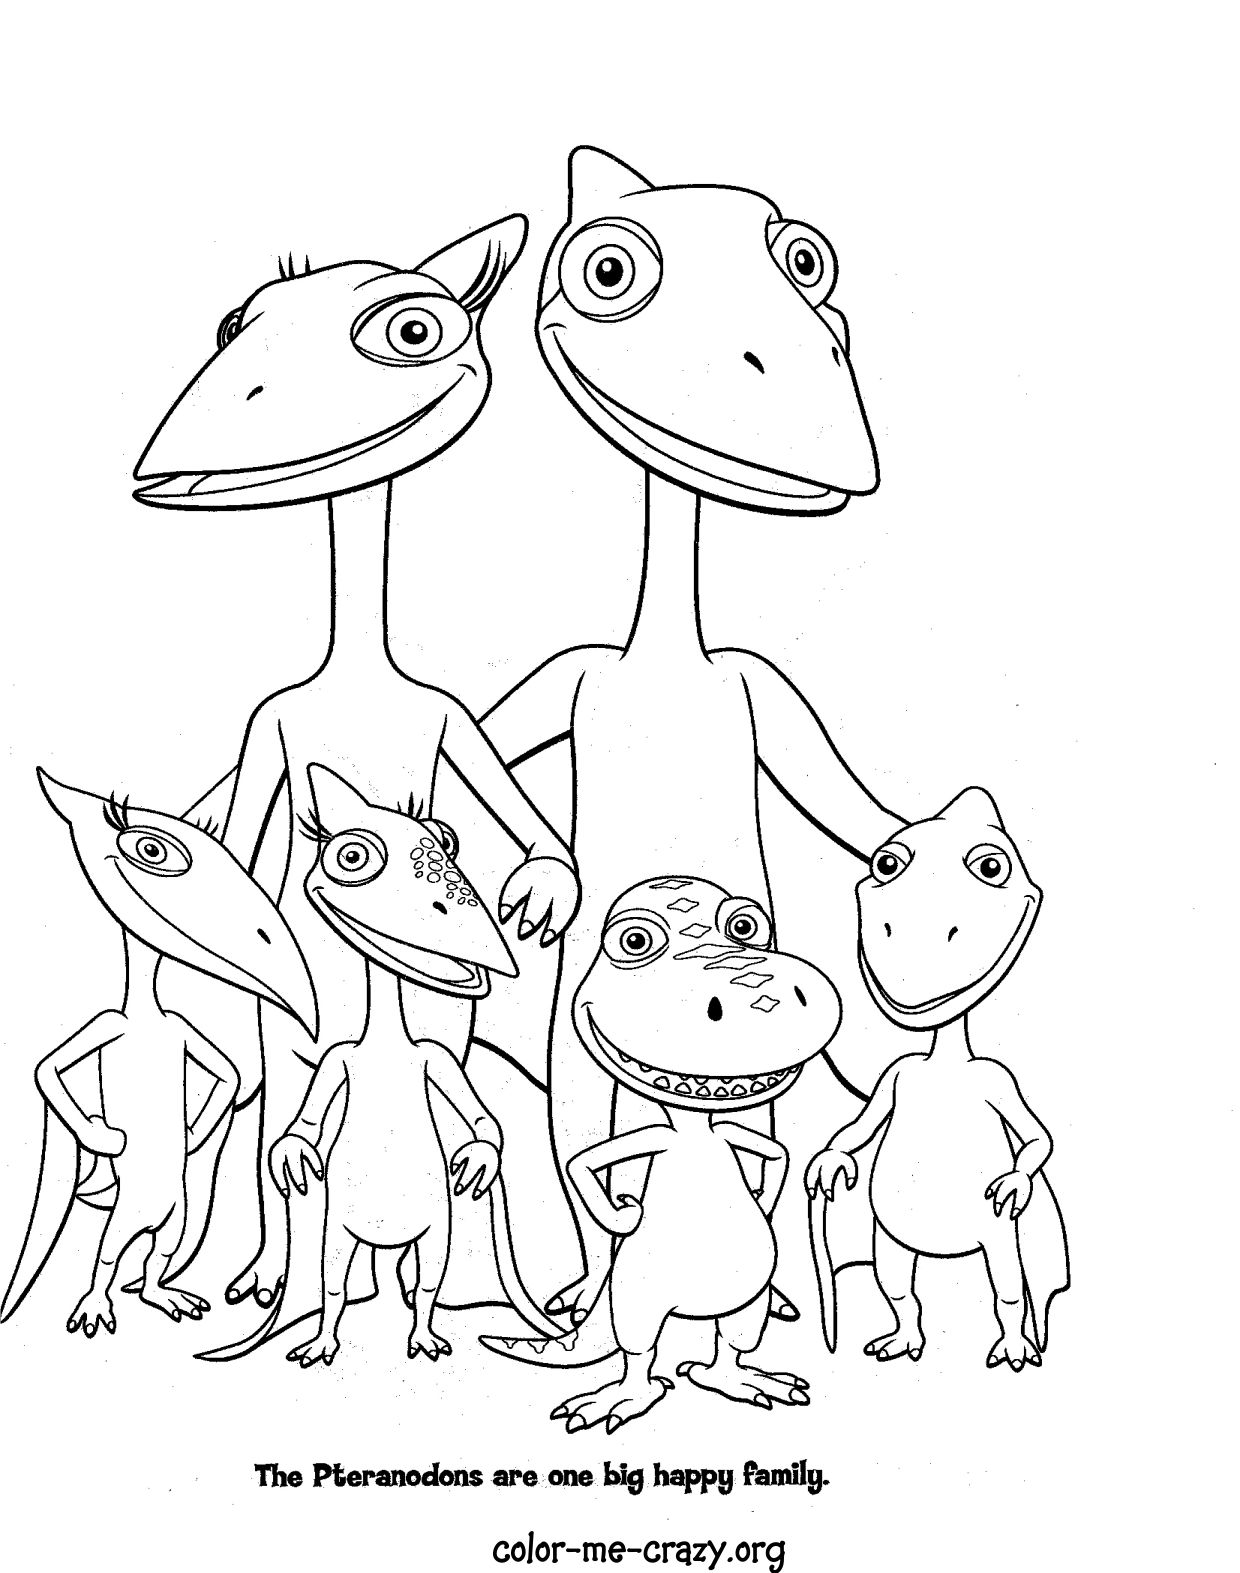 dinosaur colouring pages printable easter dinosaur coloring pages coloring home dinosaur pages printable colouring